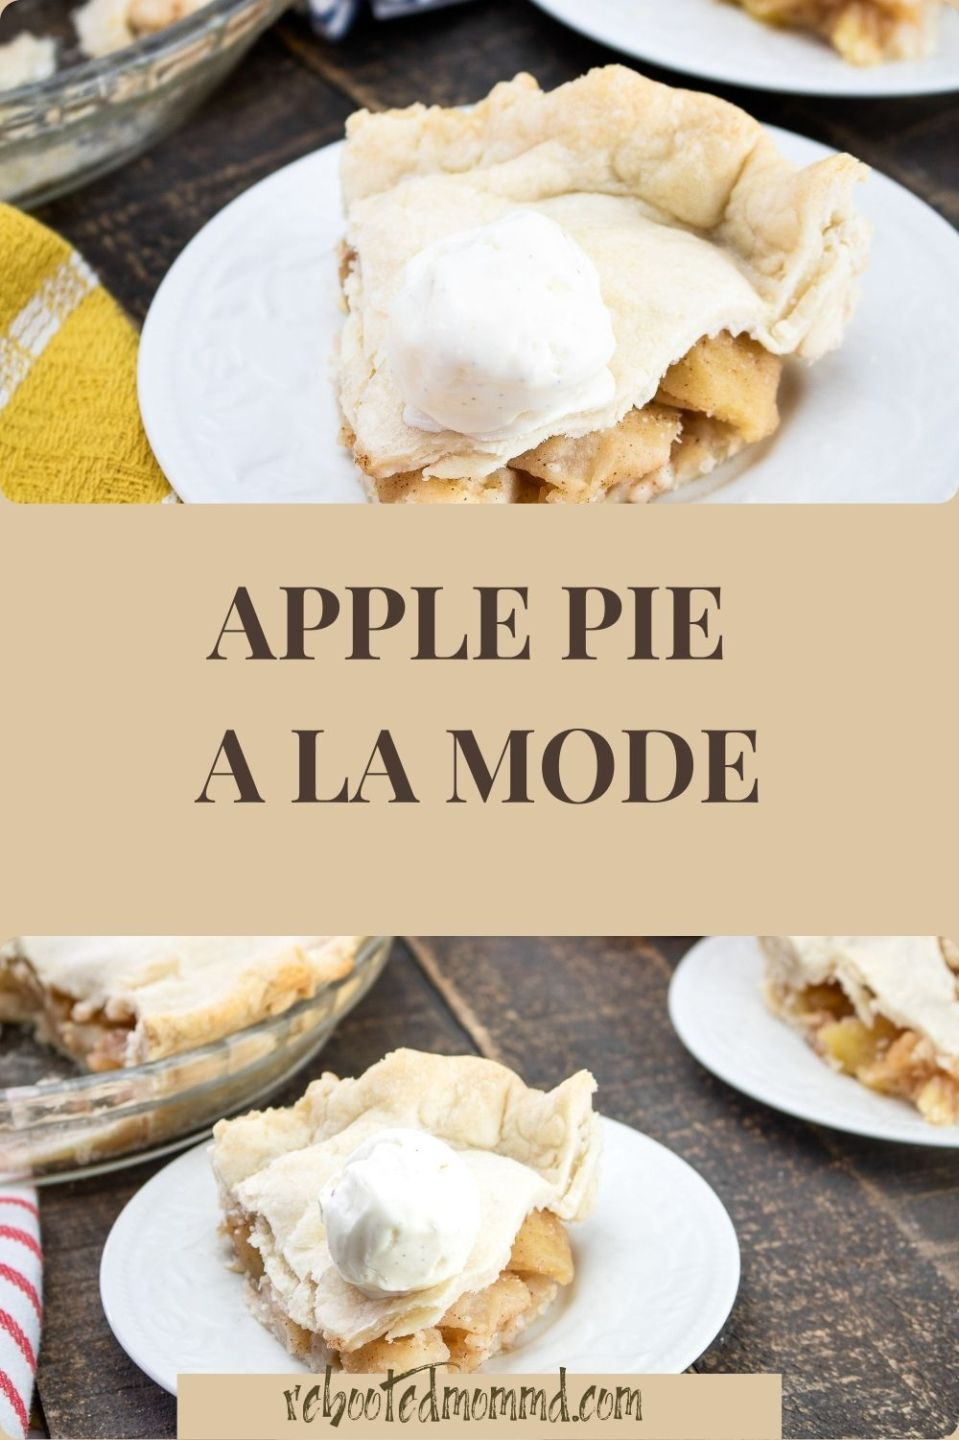 National Dessert Month: Apple Pie a la Mode